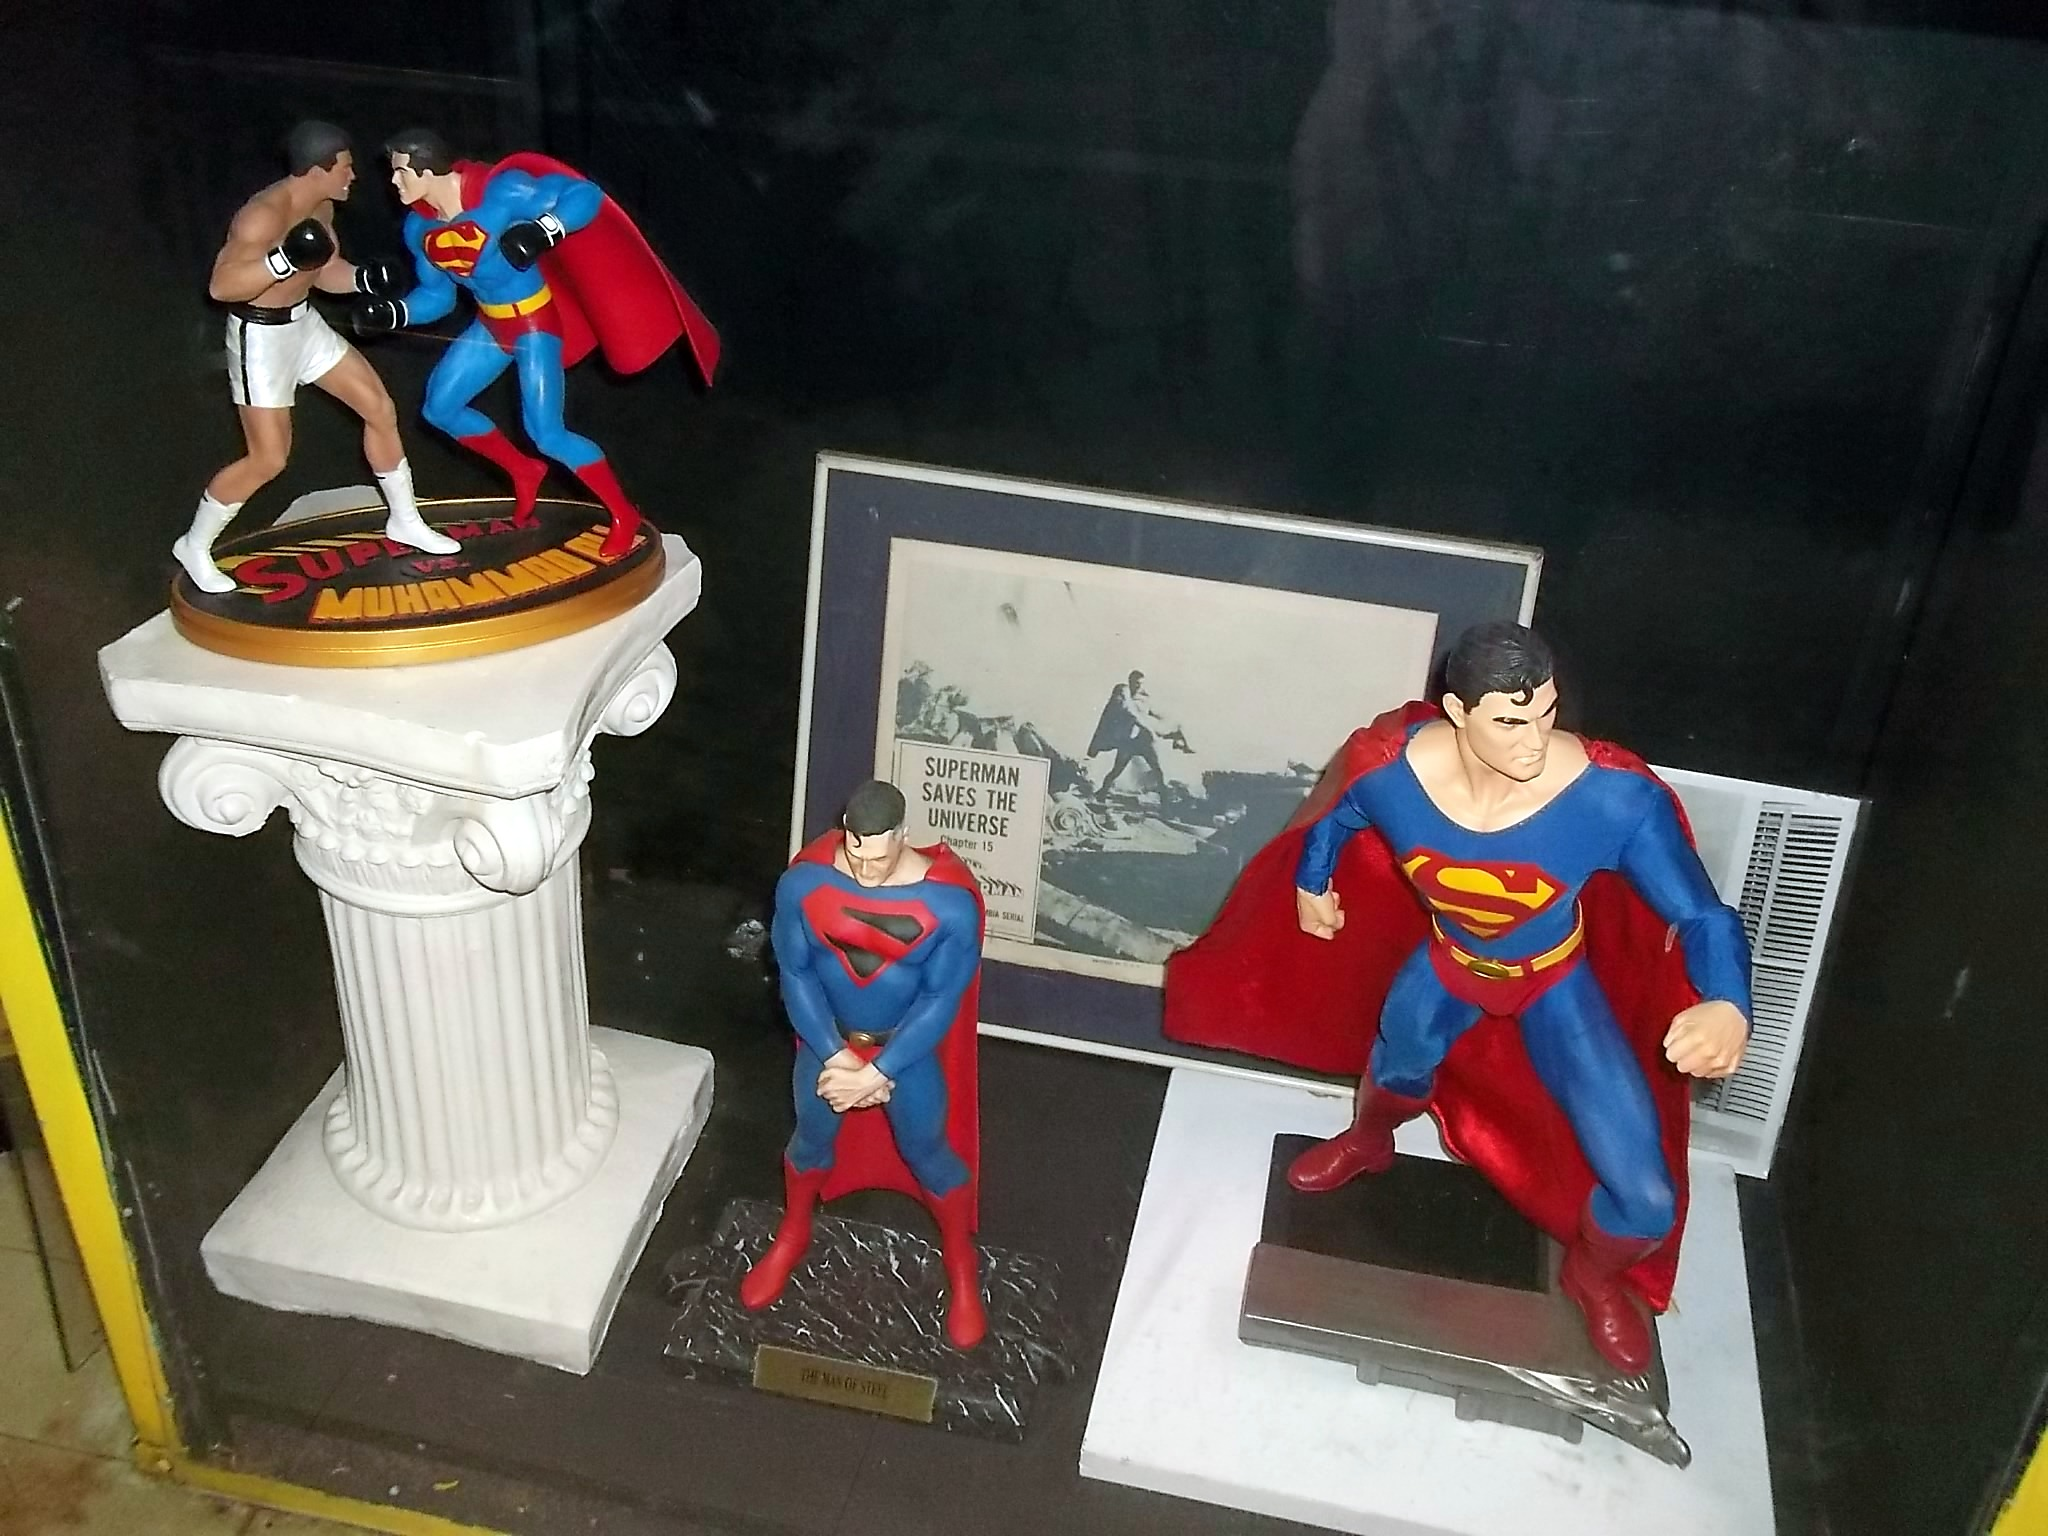 Superman figurine collection in the Super Museum in Metropolis, illinois.